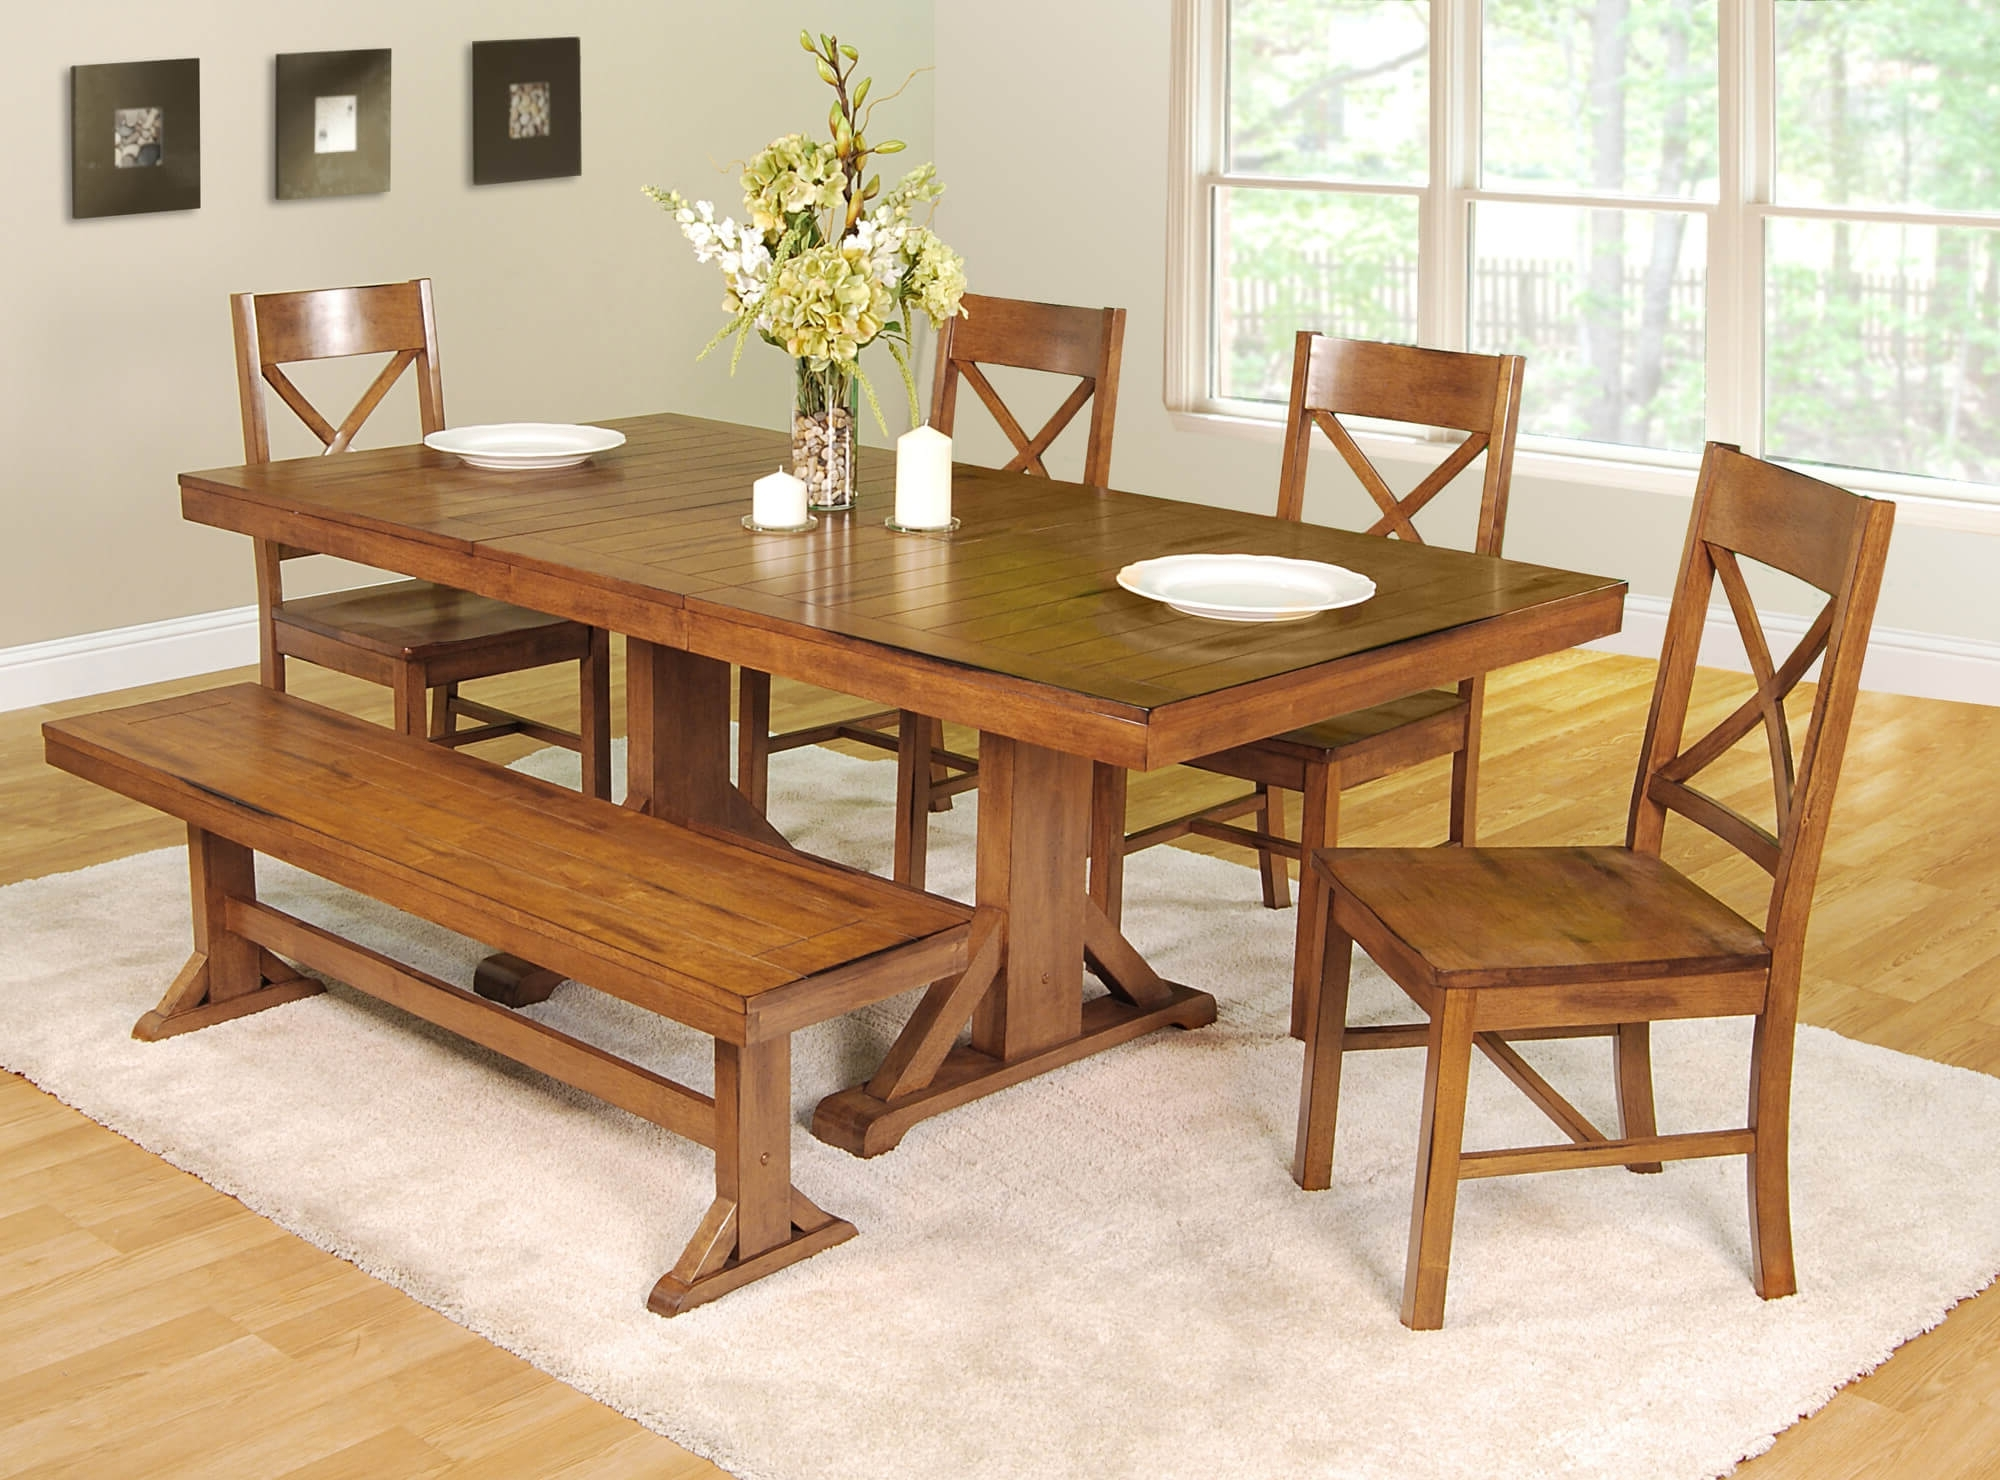 Most Recent Small Dining Tables And Bench Sets Pertaining To 26 Dining Room Sets (Big And Small) With Bench Seating (2018) (View 7 of 25)